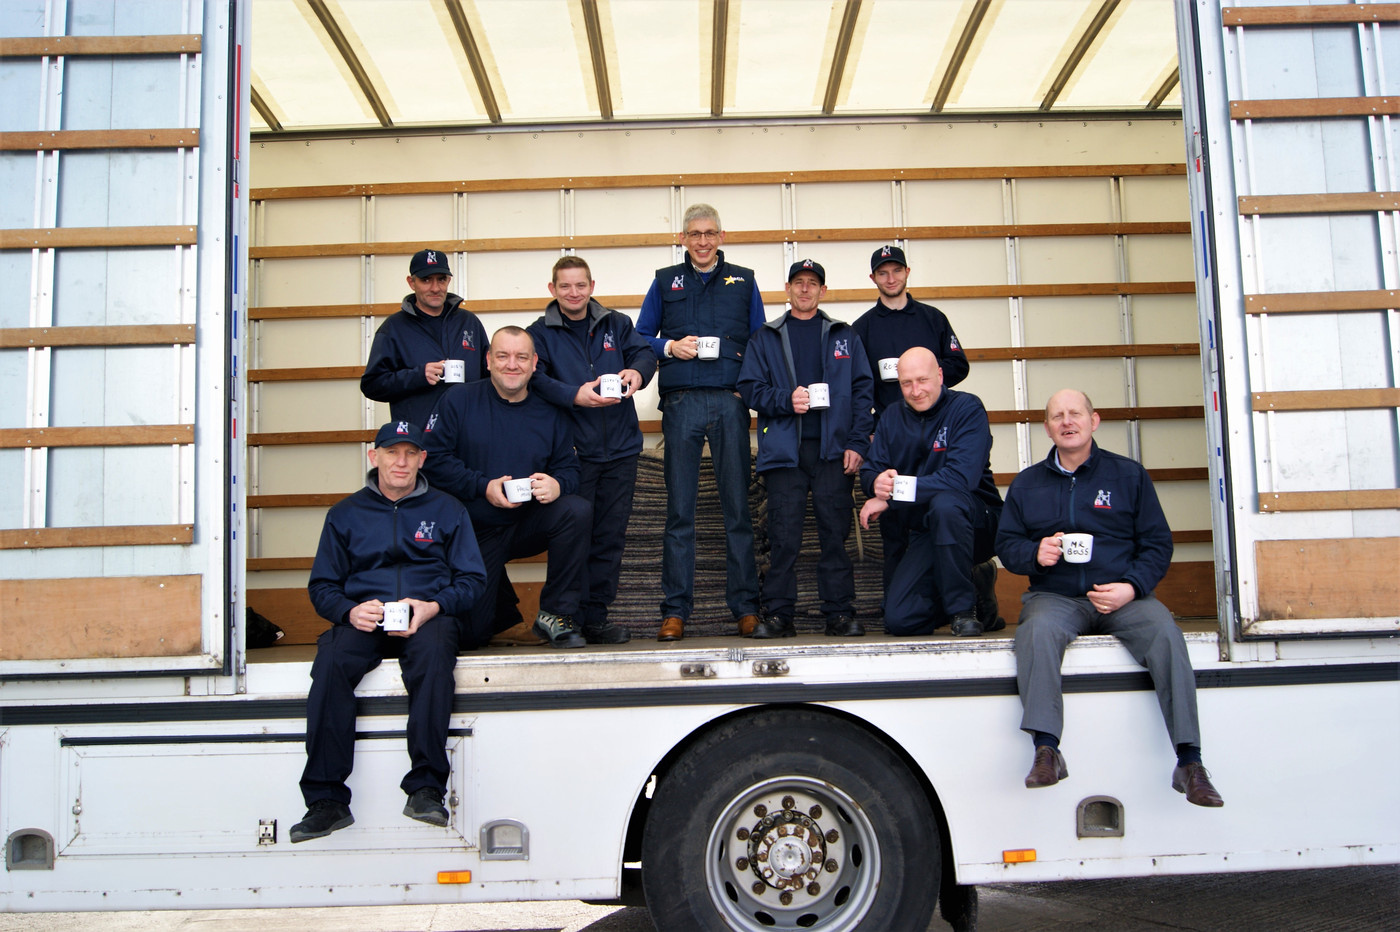 Britannia Goodwins Removals & Storage Cheshire International Removals from Cheshire